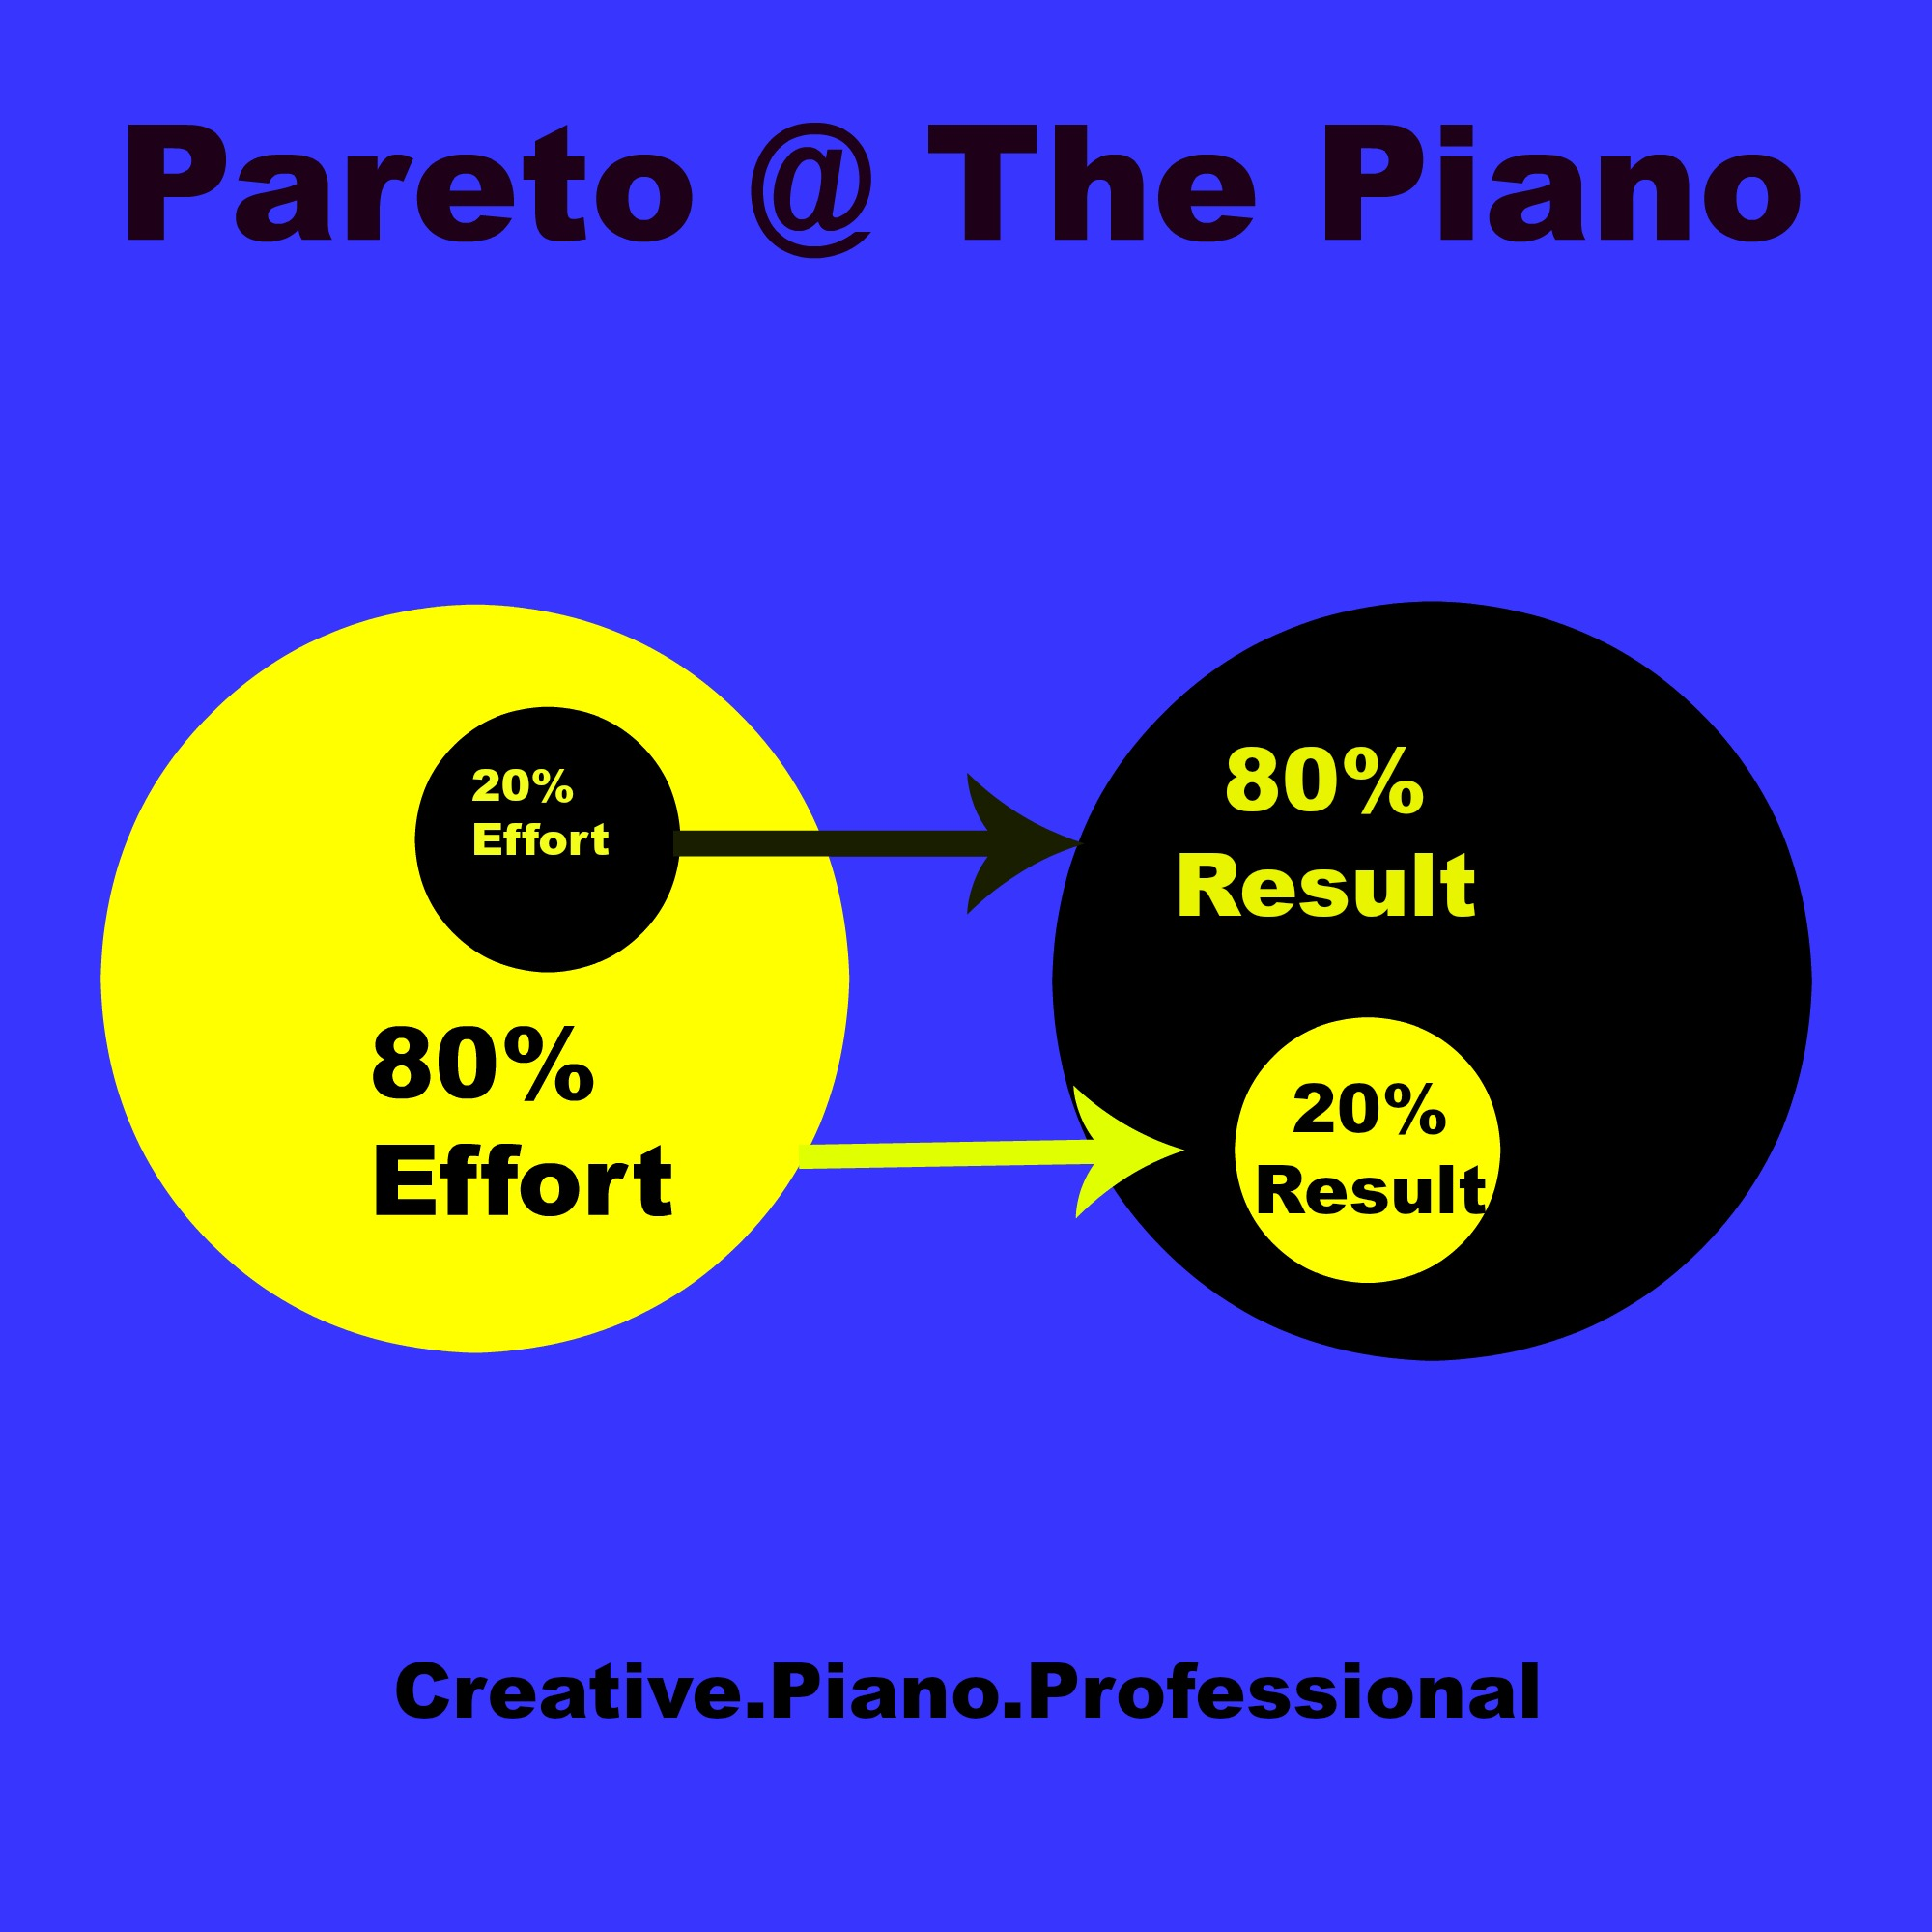 Pareto at the piano